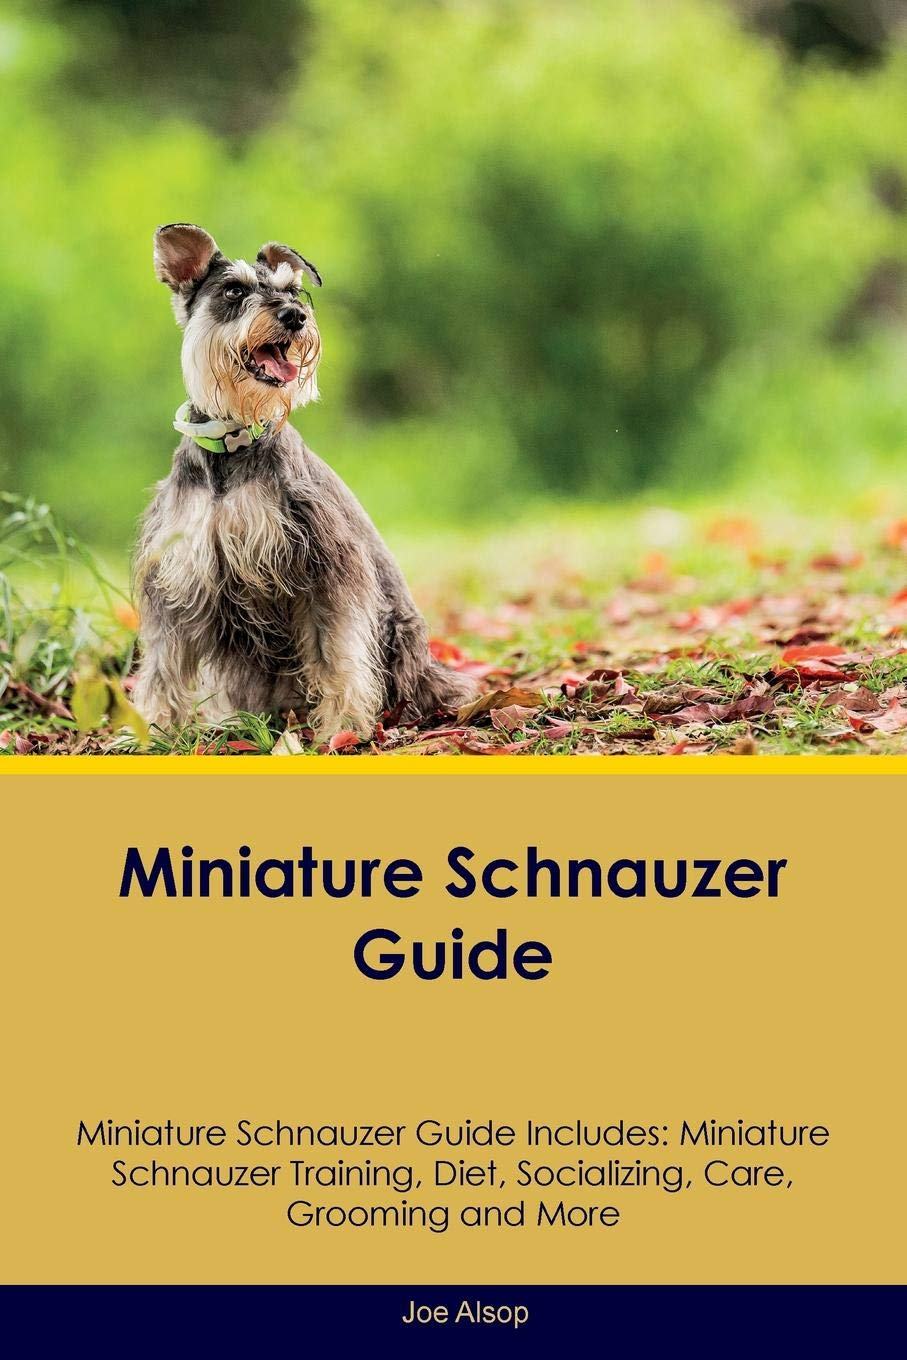 Miniature-Schnauzer-Guide-Miniature-Schnauzer-Guide-Includes-Miniature-Schnauzer-Training-Diet-Socializing-Care-Grooming-Breeding-and-More